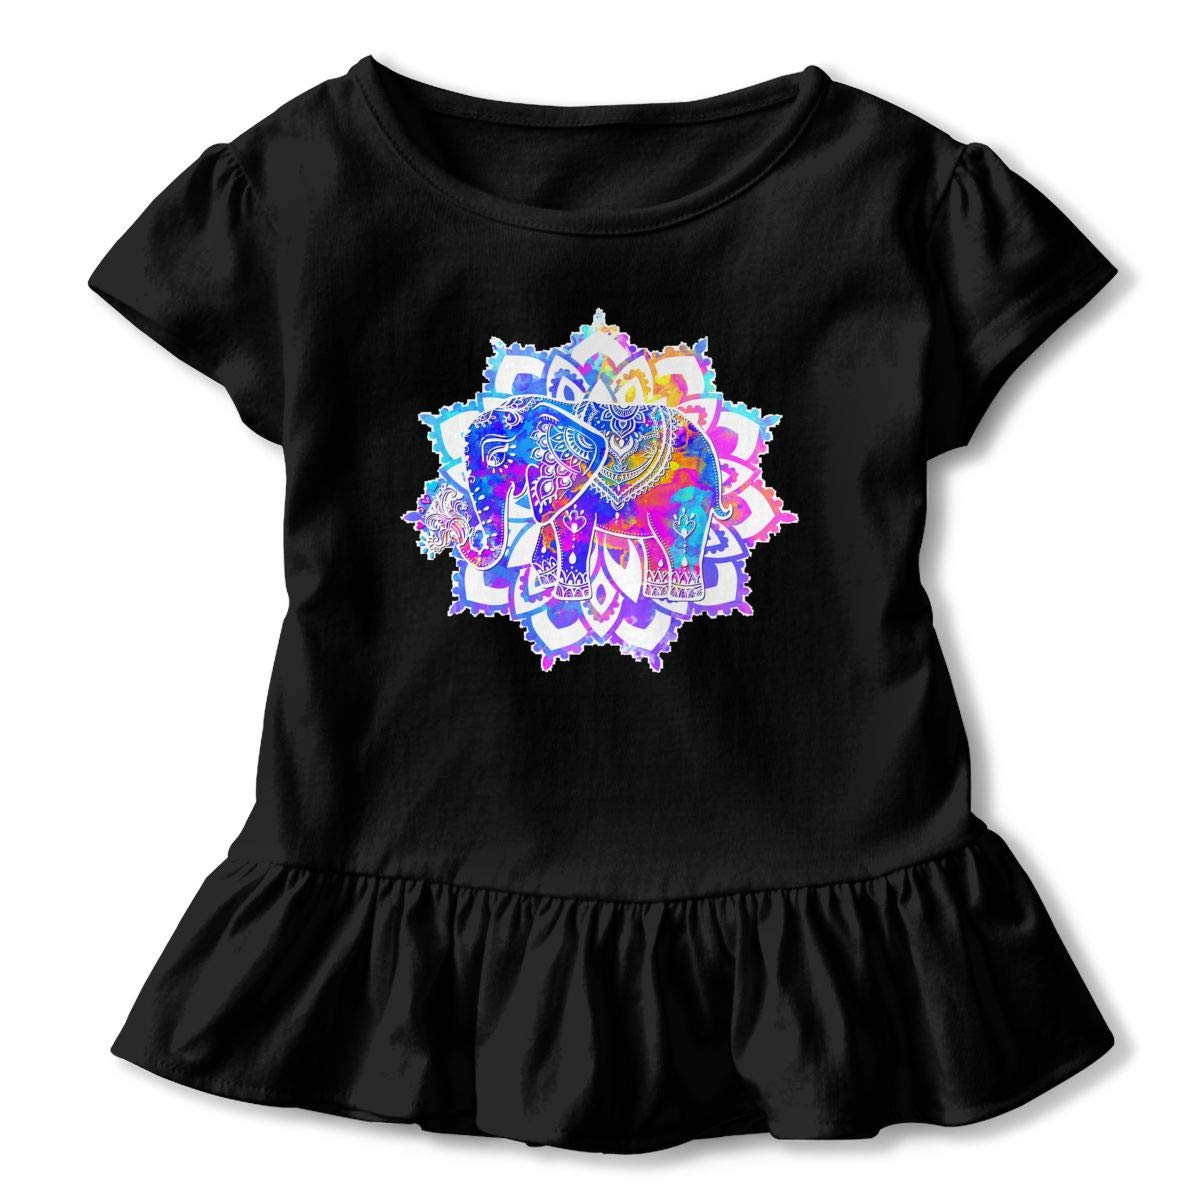 Beautiful-card-vector-13575772 Toddler Baby Girls Short Sleeve ONeck Basic Shirts with Printed Designs in Front for School Birthday Party Gifts Ruffles Top Black